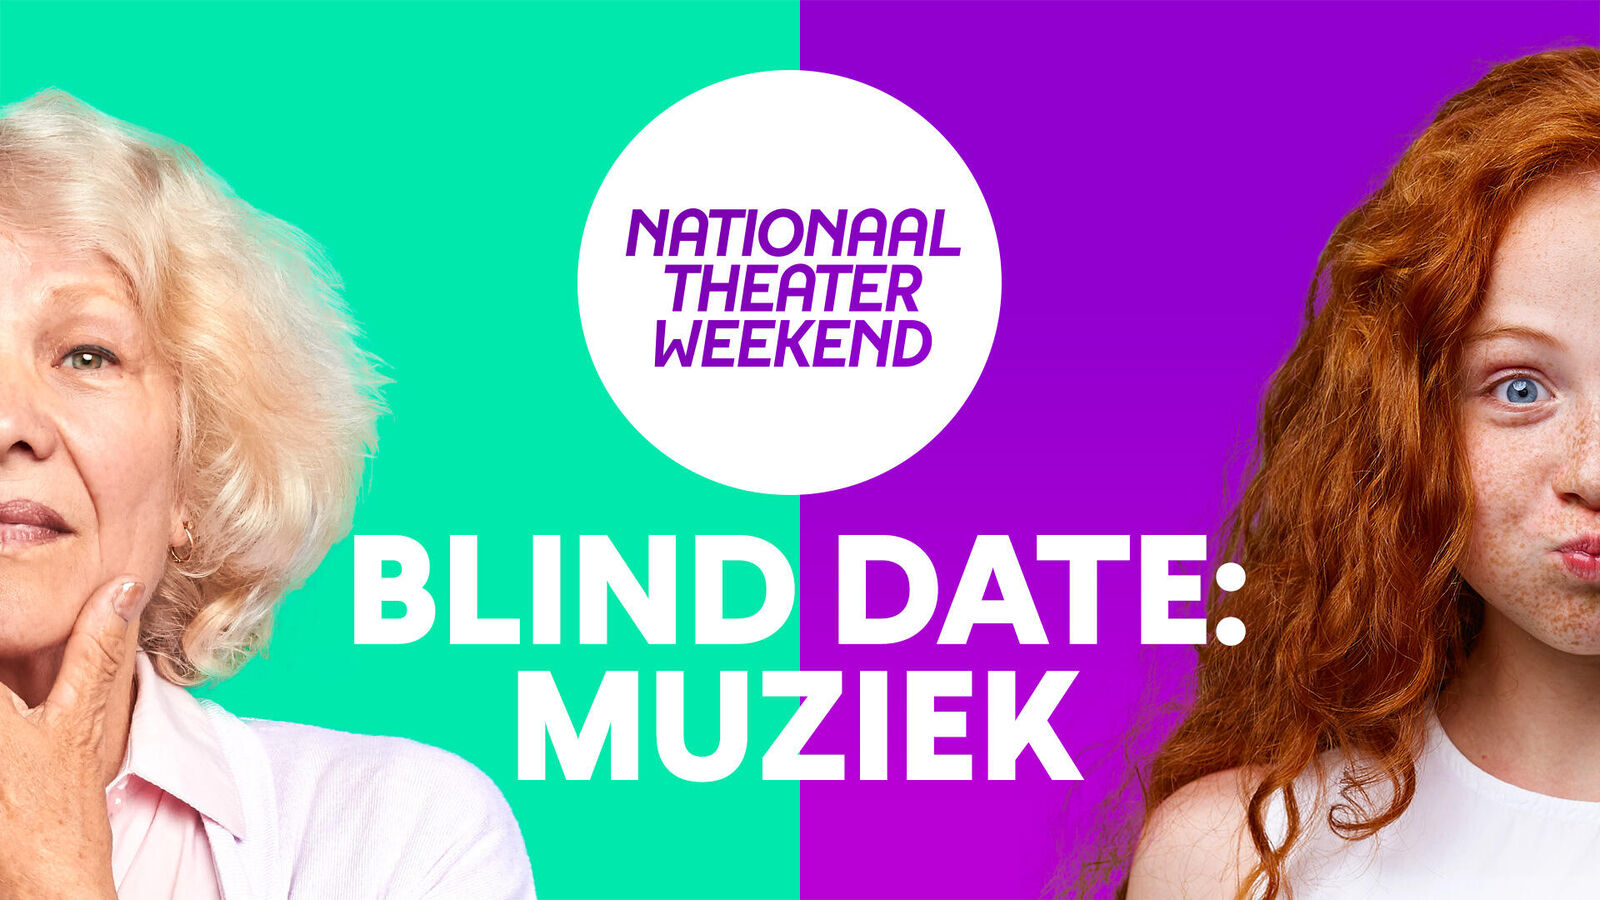 Blind date - event